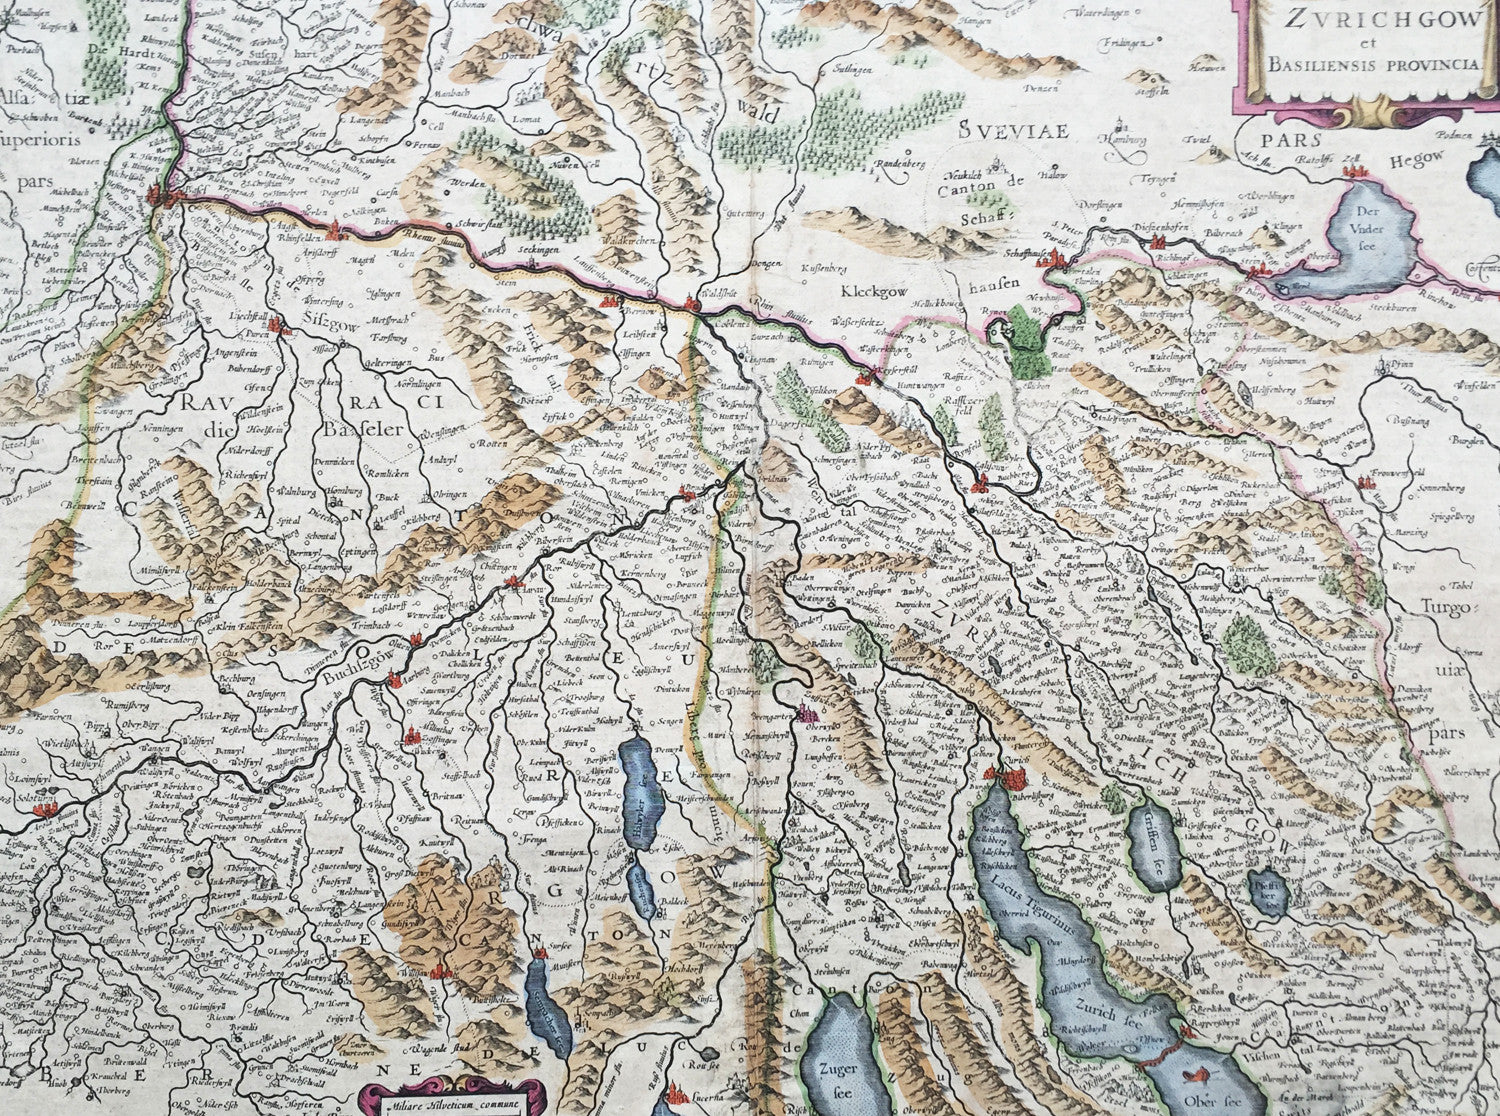 1636 Mercator Hondius Large Old Antique Map Zurich Basel Cantons